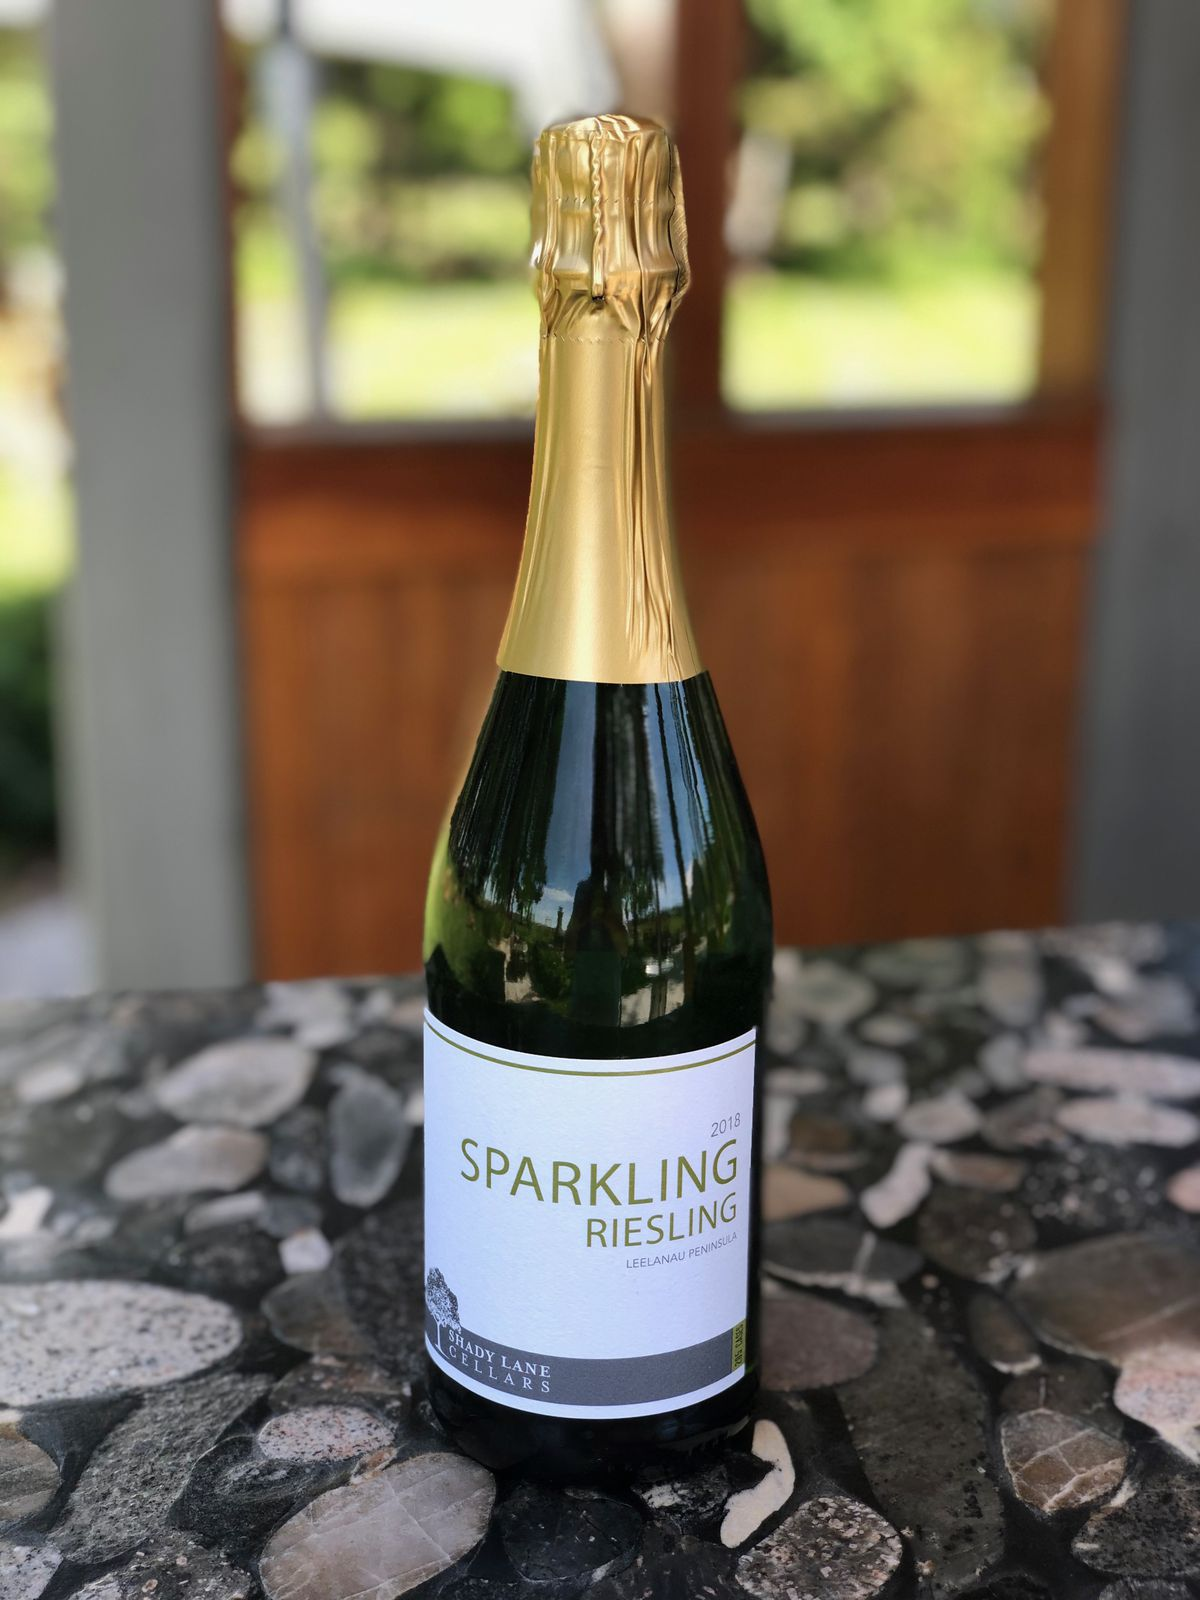 A bottle of sparkling riesling from Shady Lane Cellars.